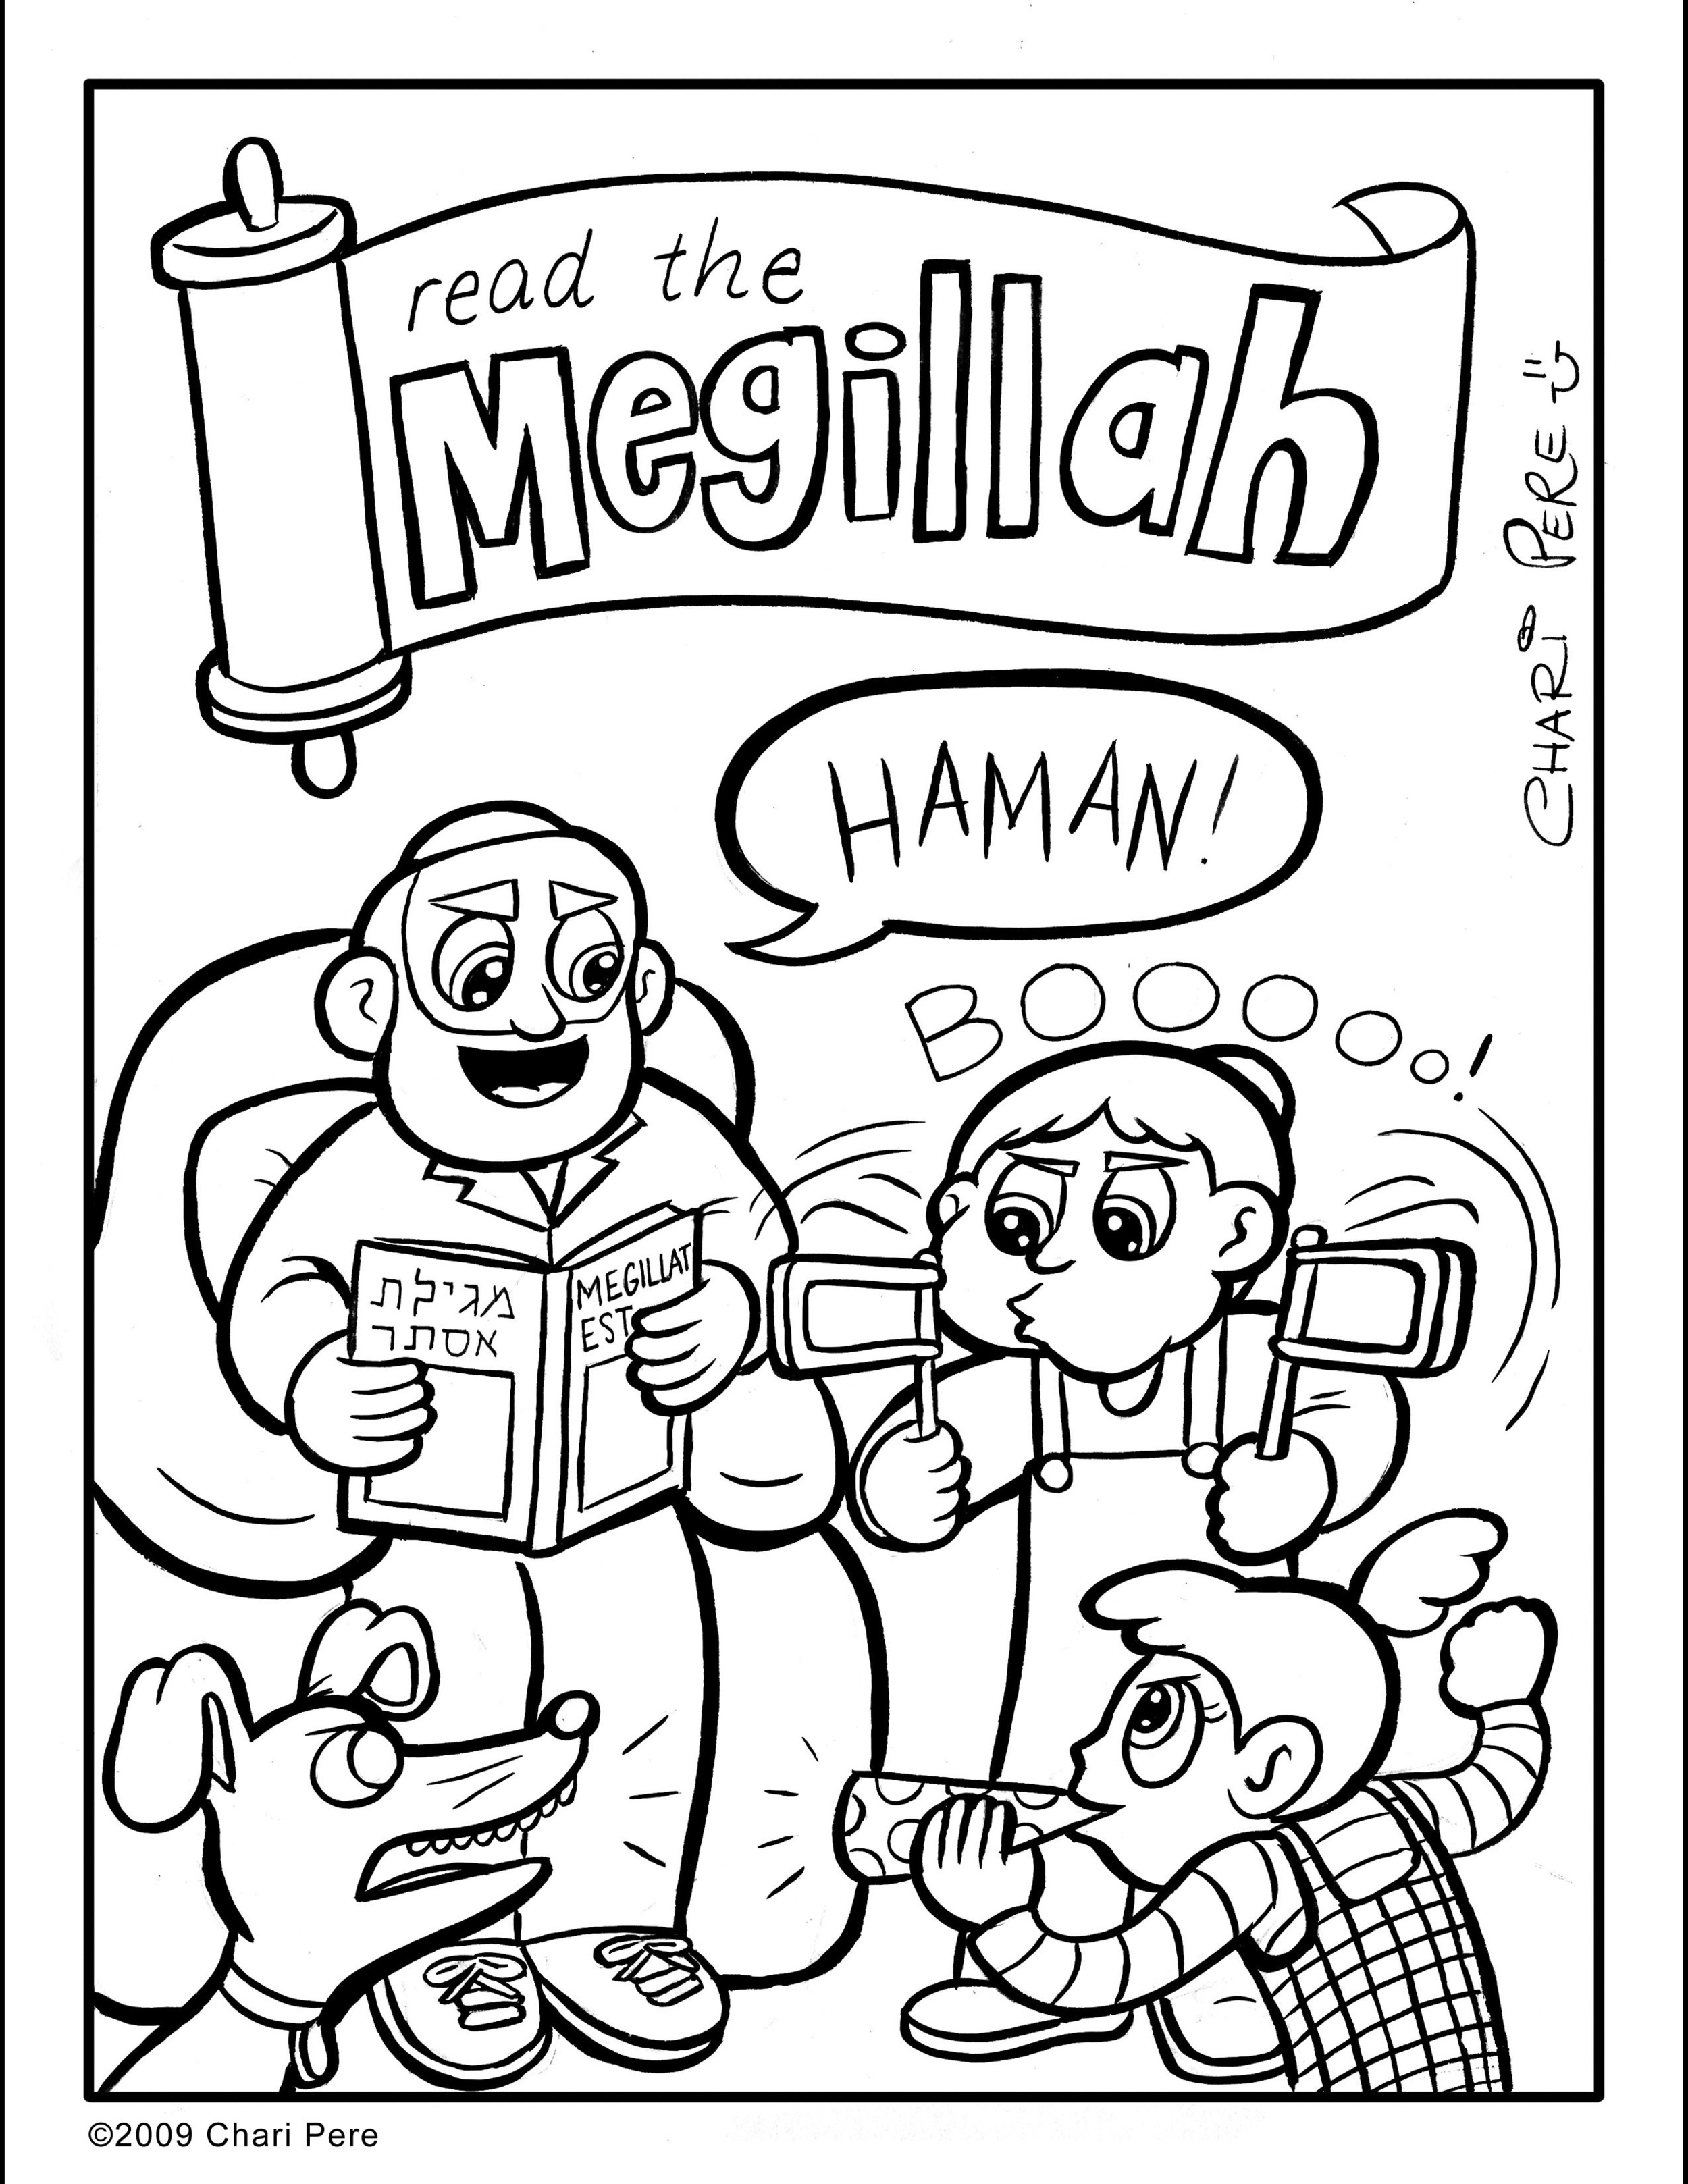 Kids' Purim Coloring Page for The Orthdox Union